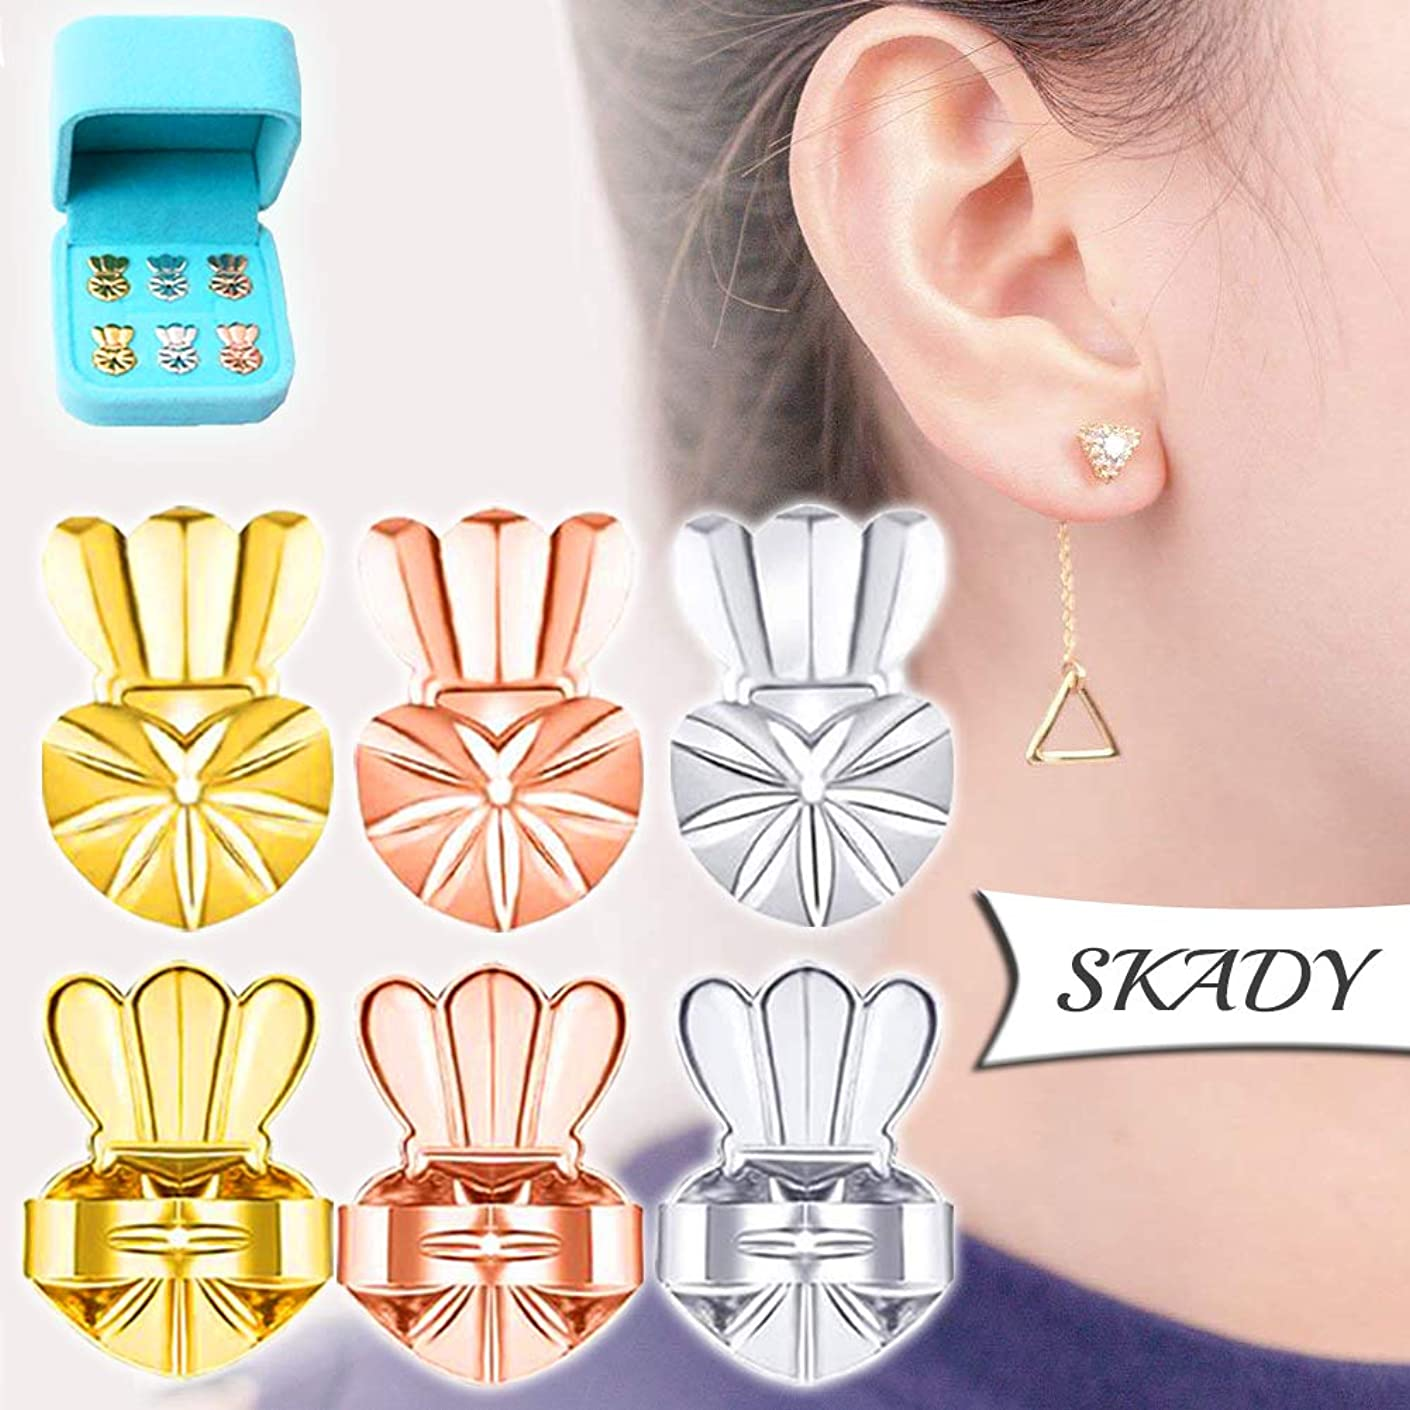 Earring Backs Lifters - 3 Pairs Ear Lift - Adjustable hypoallergenics Earing Backs Lifters - 1 Pair Gold Plated 1 Pair Silver 1 Pair Rose Gold Ear Lobe Support + Jewelry Case